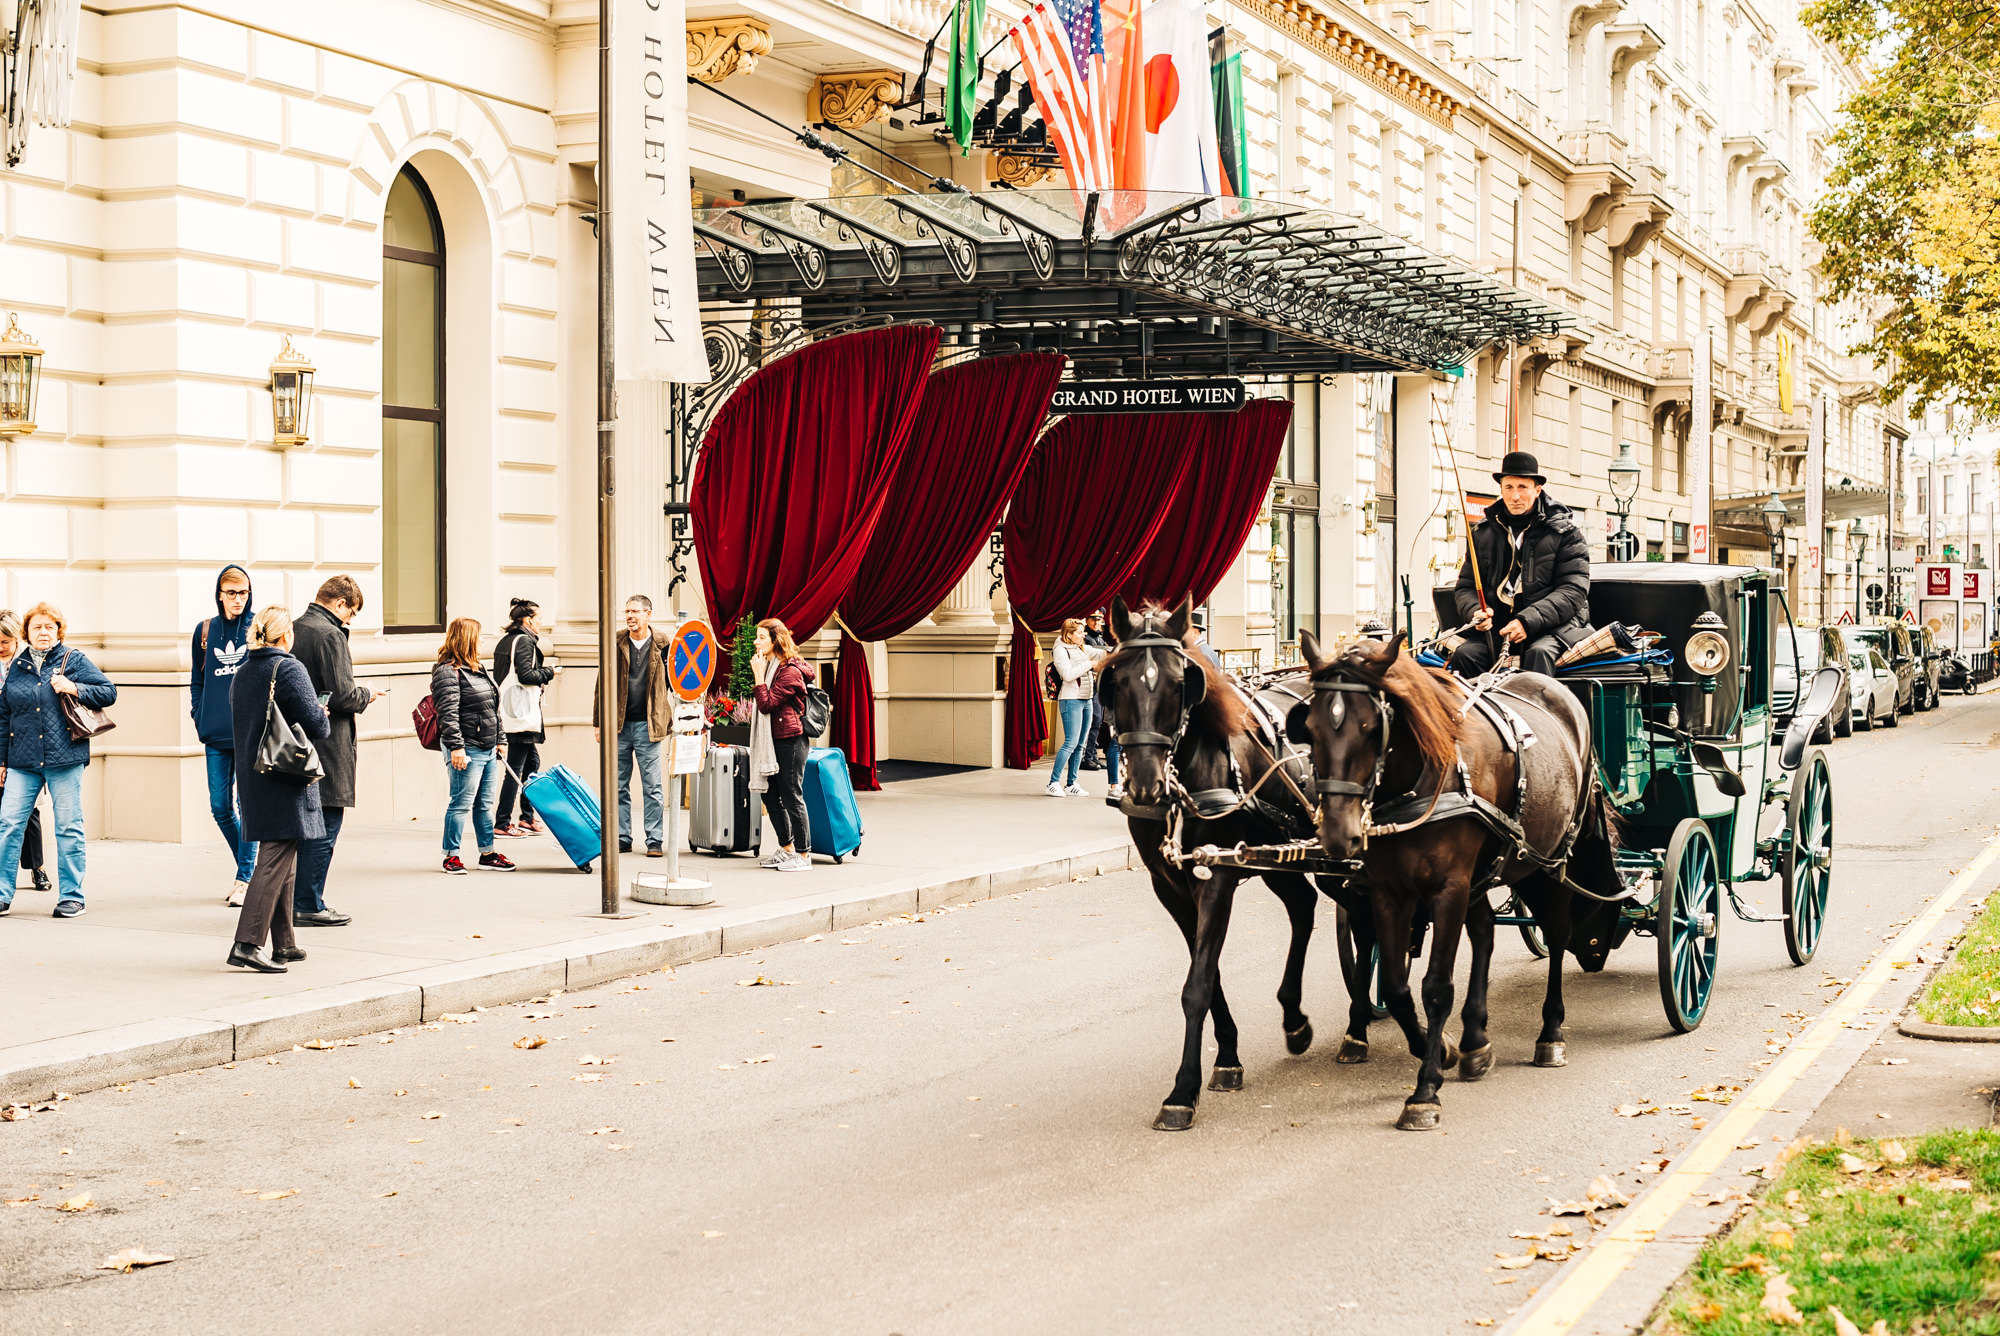 Horse carriage passing by Grand Hotel Wien